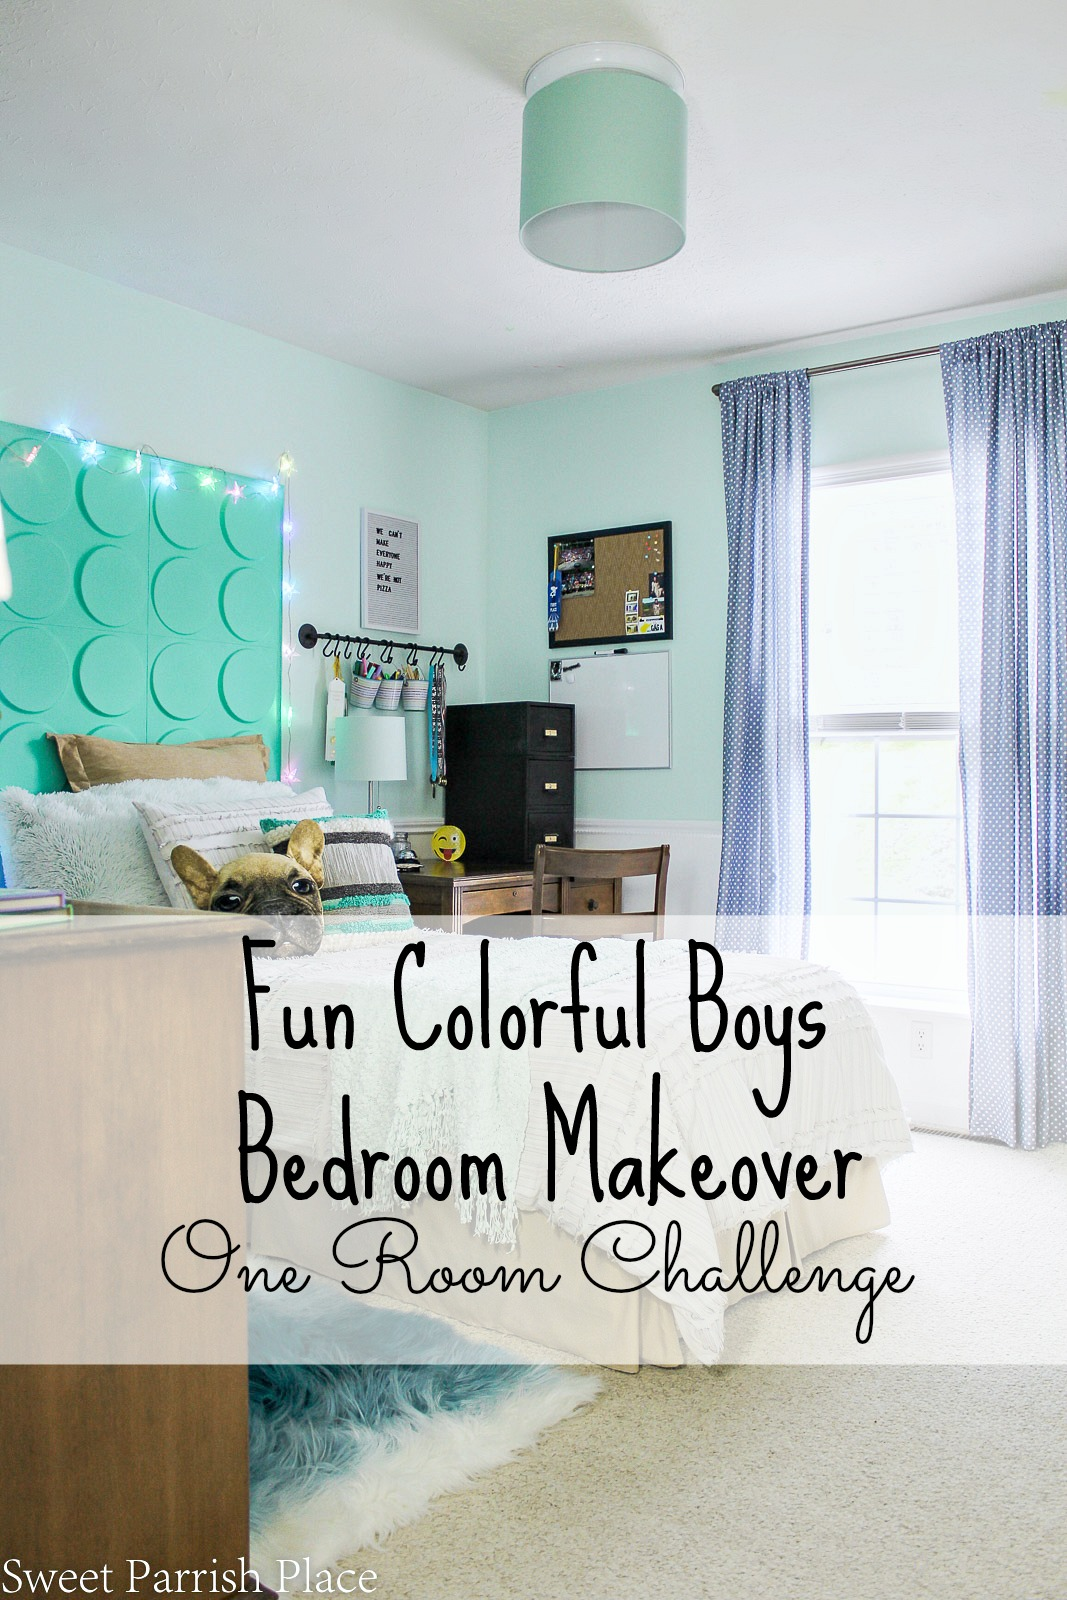 Boys Bedroom Makeover Reveal | One Room Challenge • Sweet ...